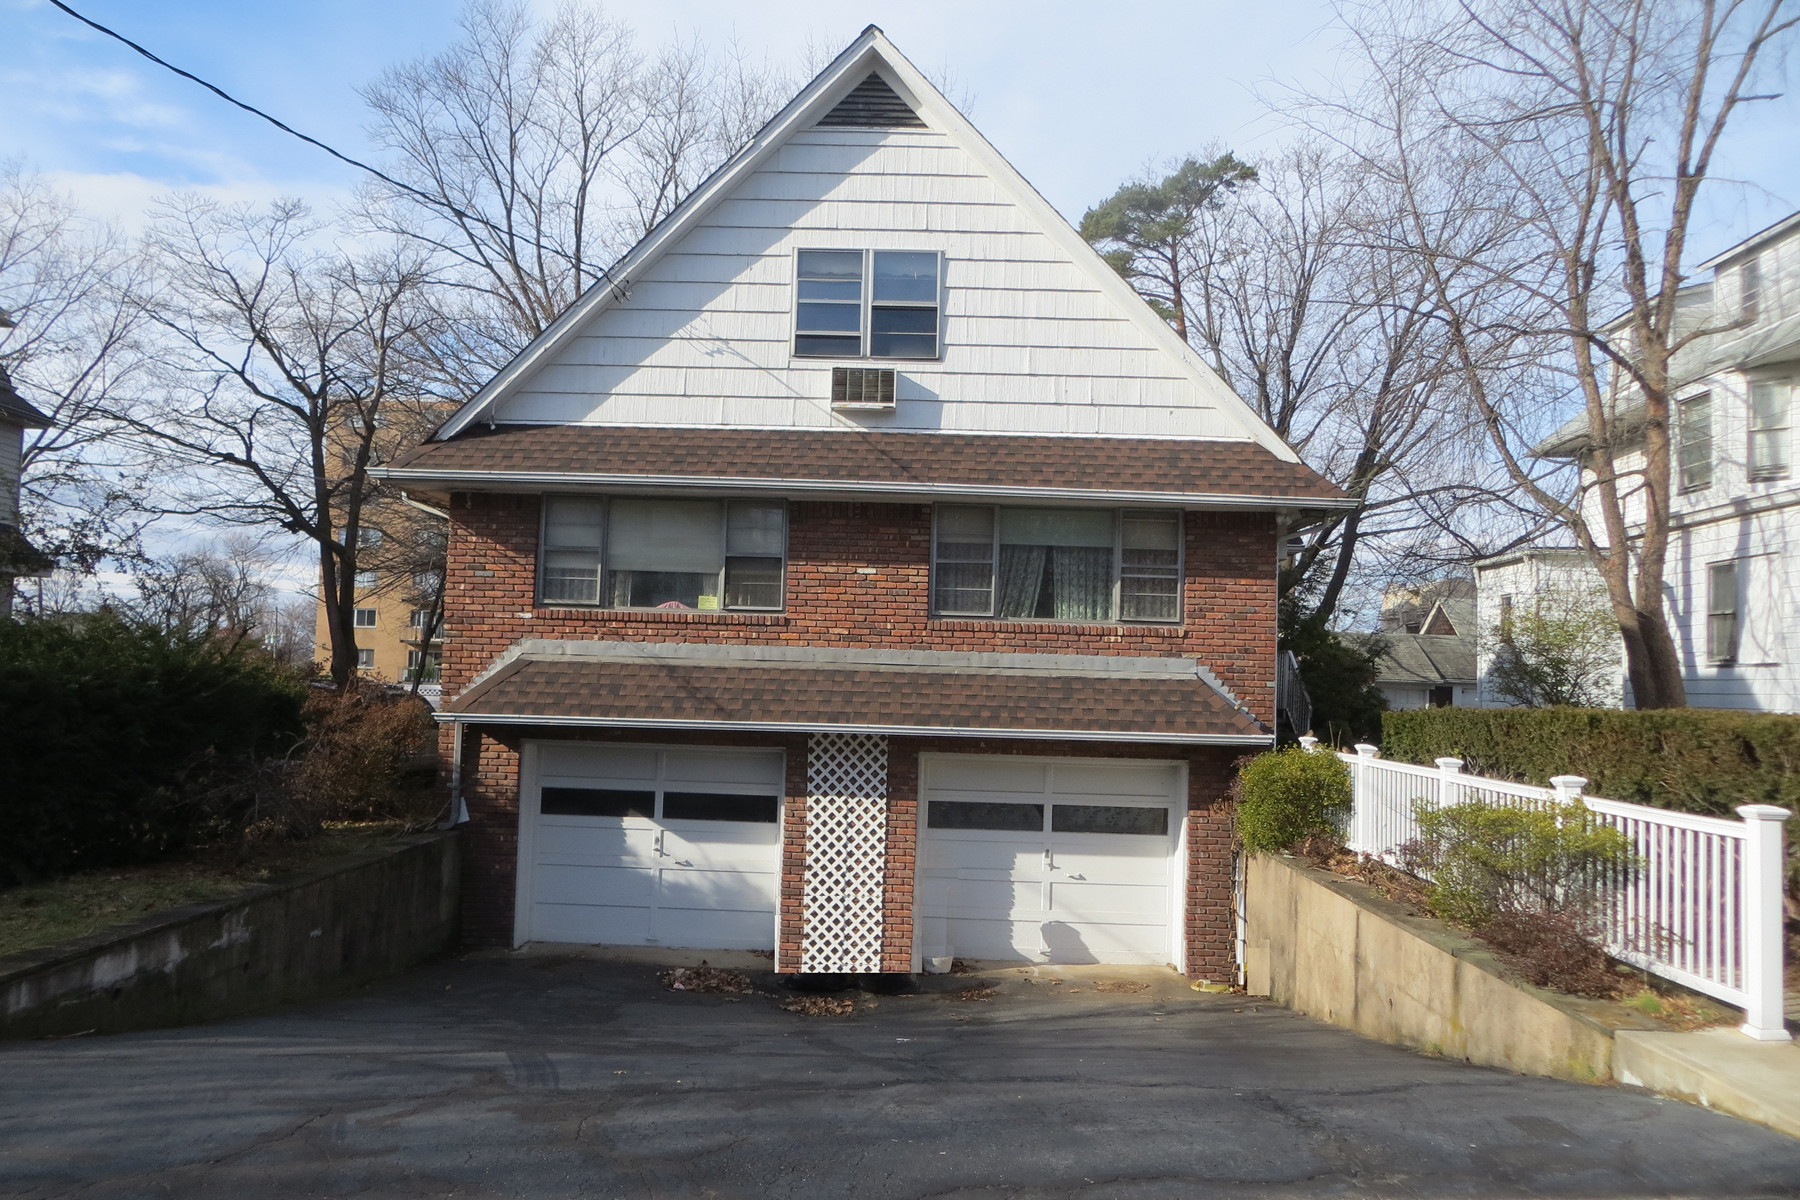 Multi-Family Home for Rent at Great Location! 148 Bergen Avenue, Ridgefield Park, New Jersey 07660 United States